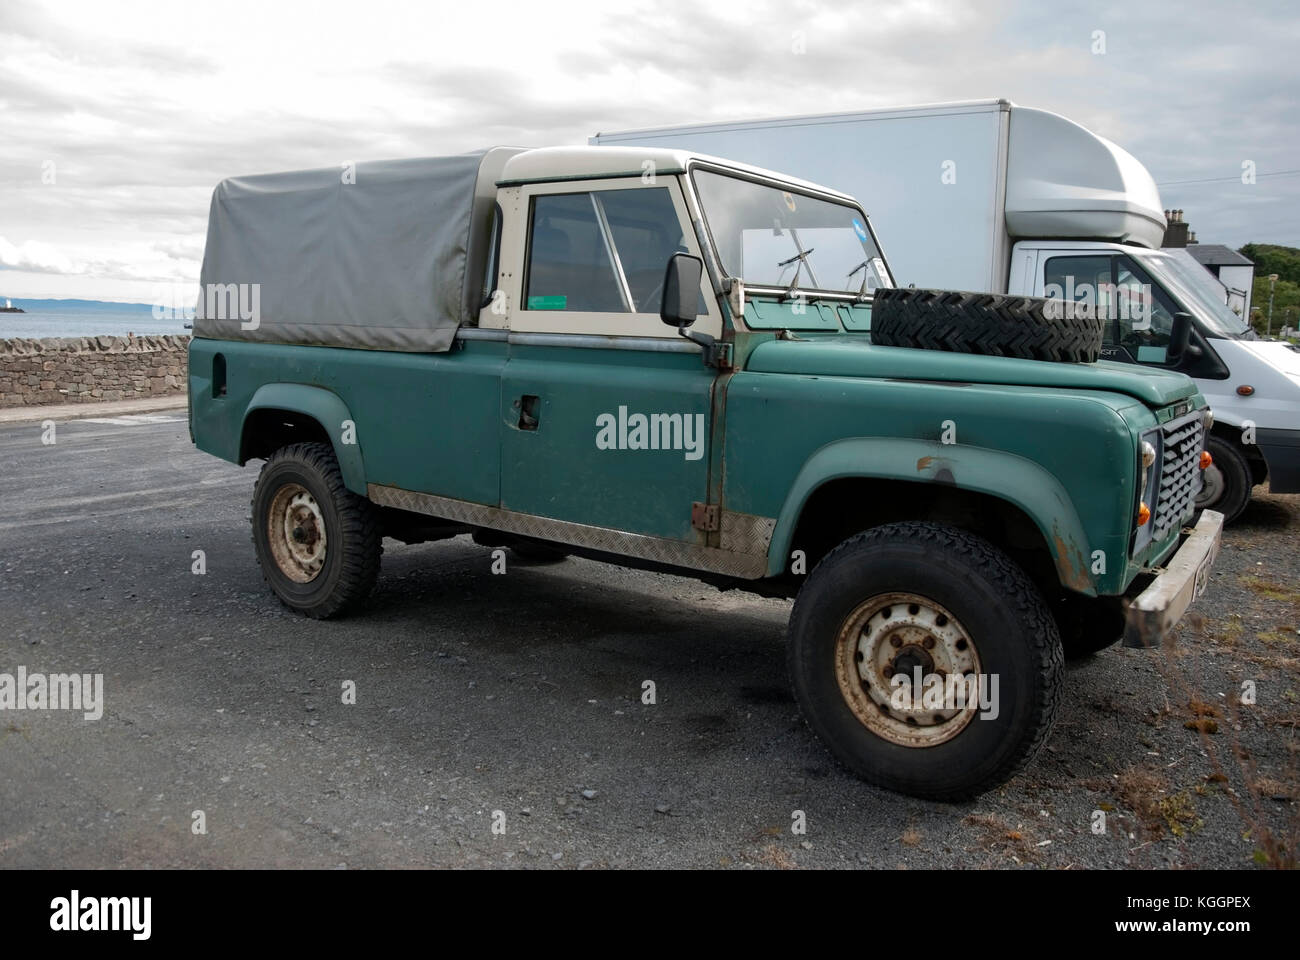 Land Rover Defender Usa >> Land Rover Defender 110 Stock Photos & Land Rover Defender 110 Stock Images - Alamy